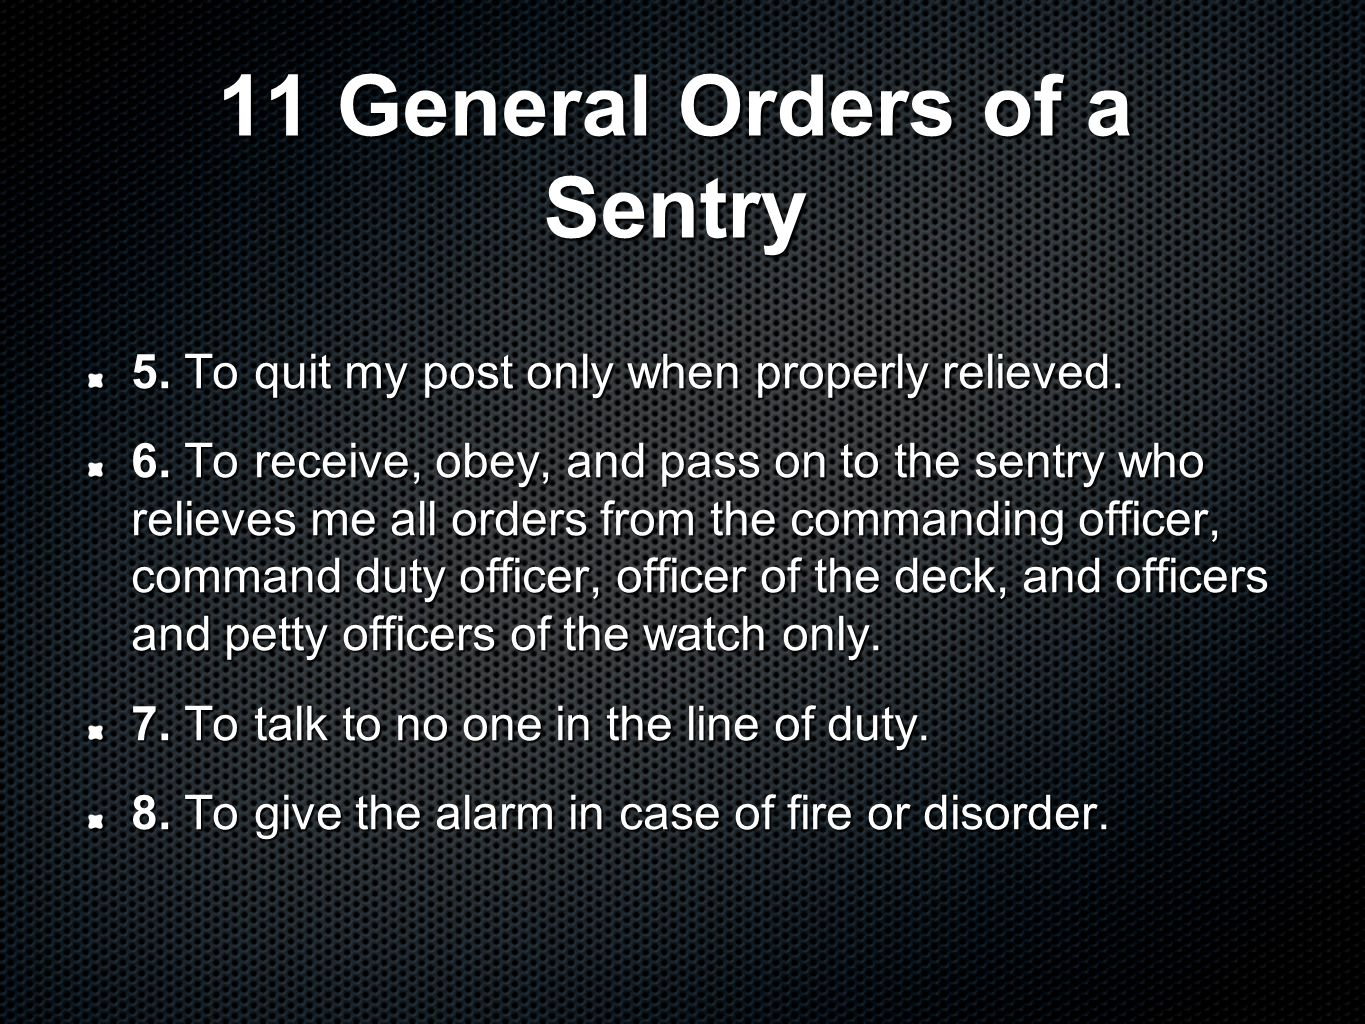 11 General Orders of a Sentry 5. To quit my post only when properly relieved. 6. To receive, obey, and pass on to the sentry who relieves me all order